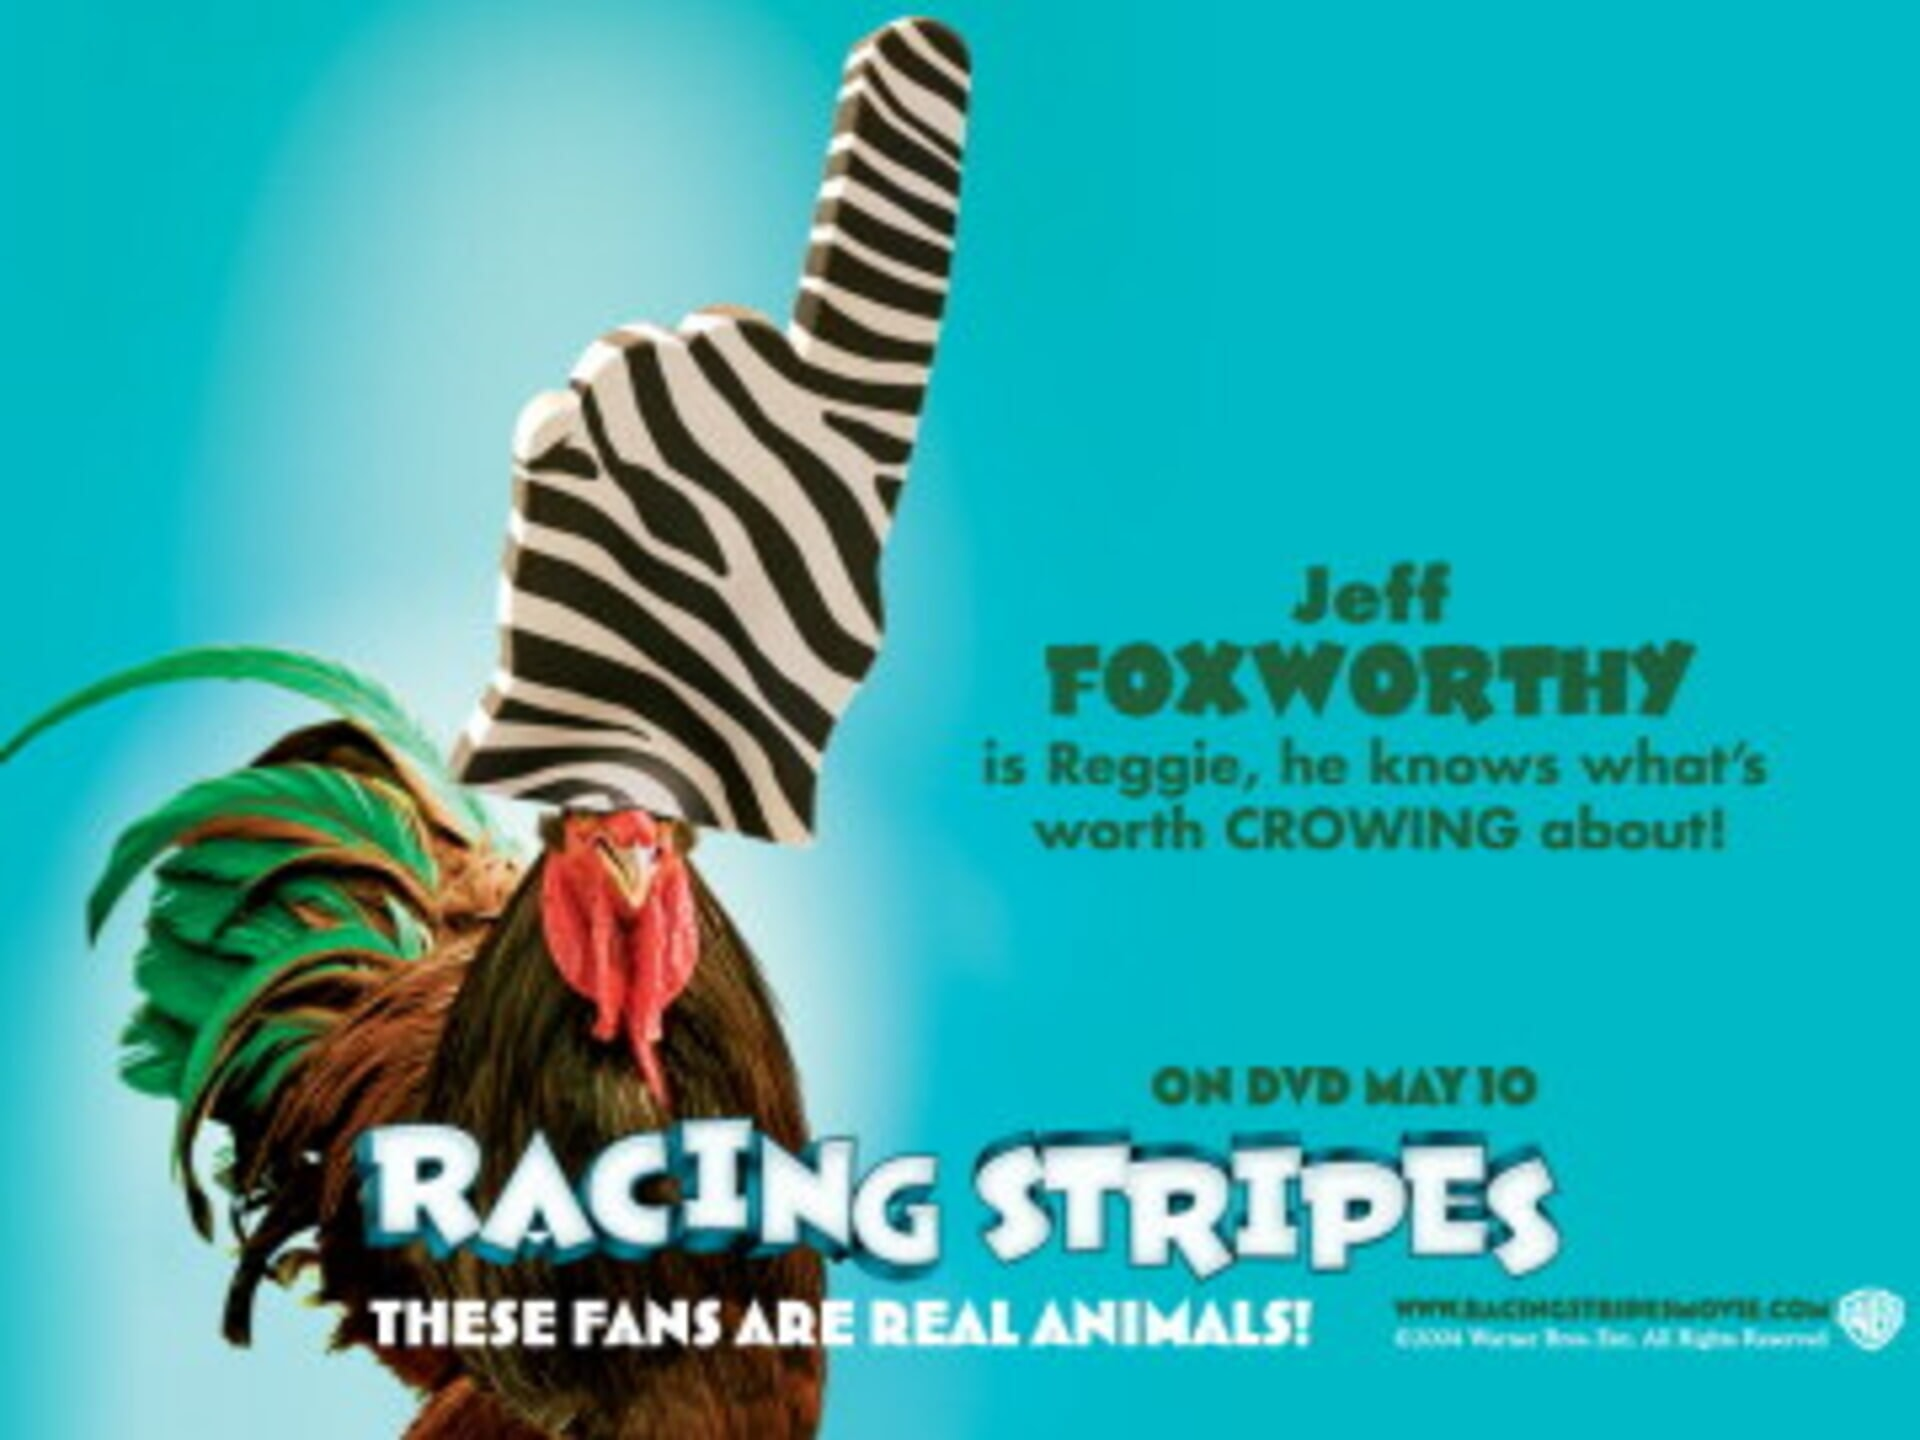 Racing Stripes - Image 53